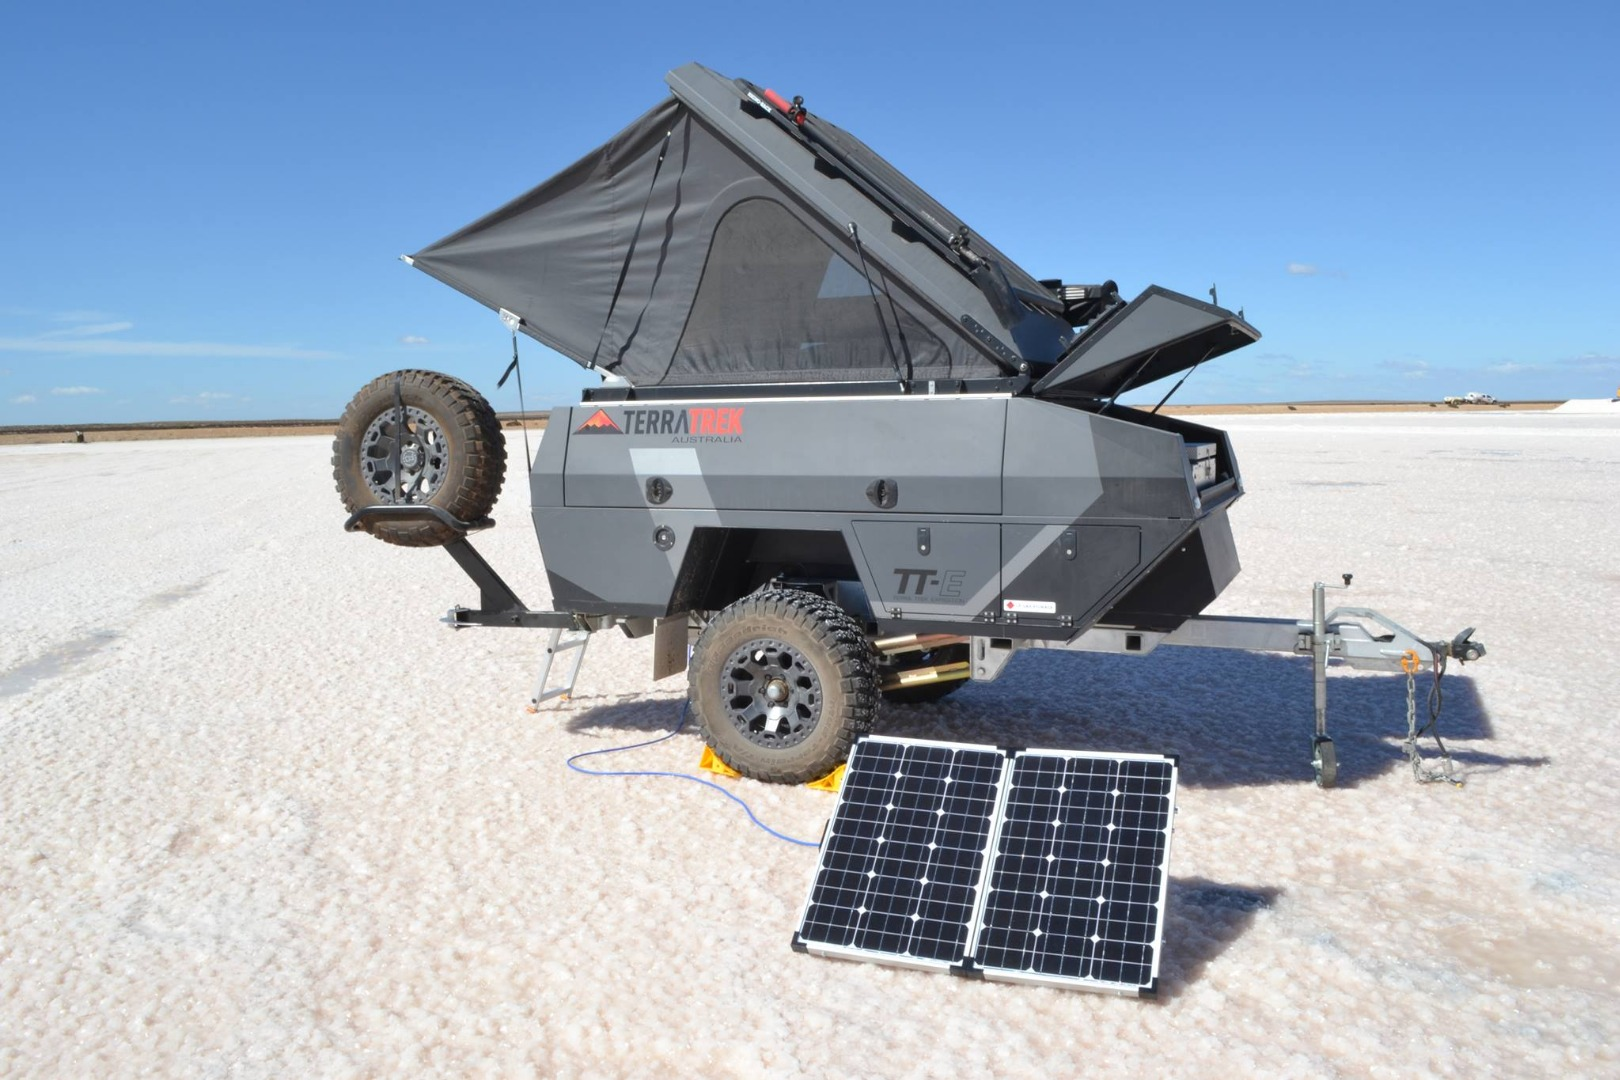 Terra Trek's ultra-stout trailer eats up the outback and pops to life at camp